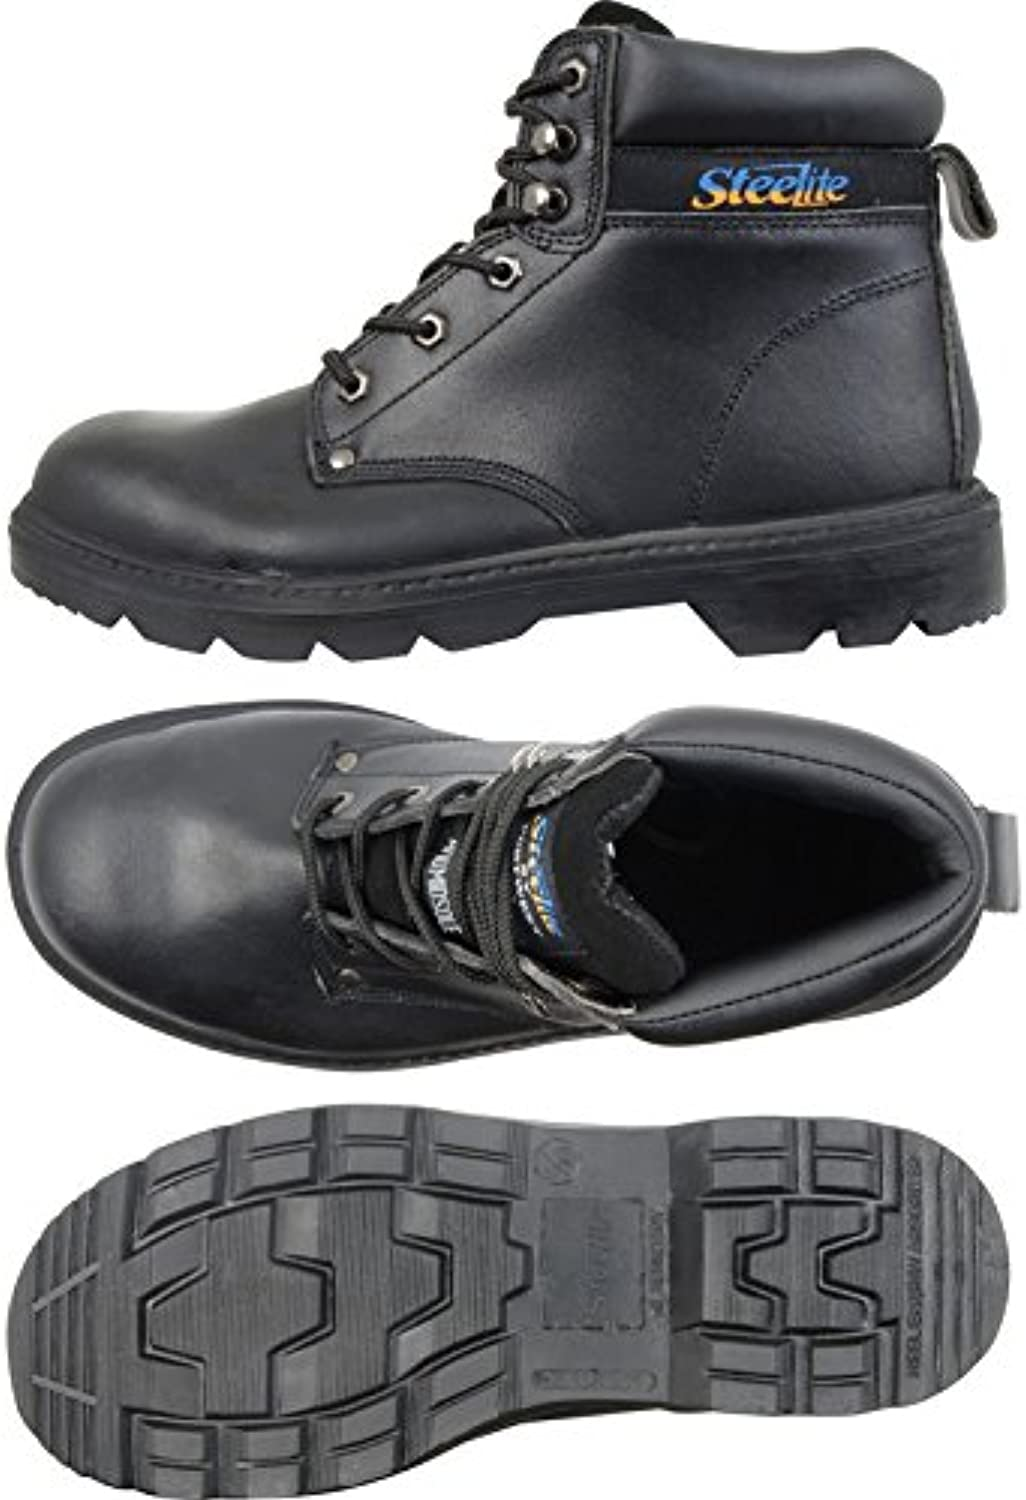 Safety Site Boots Size 11 (46)